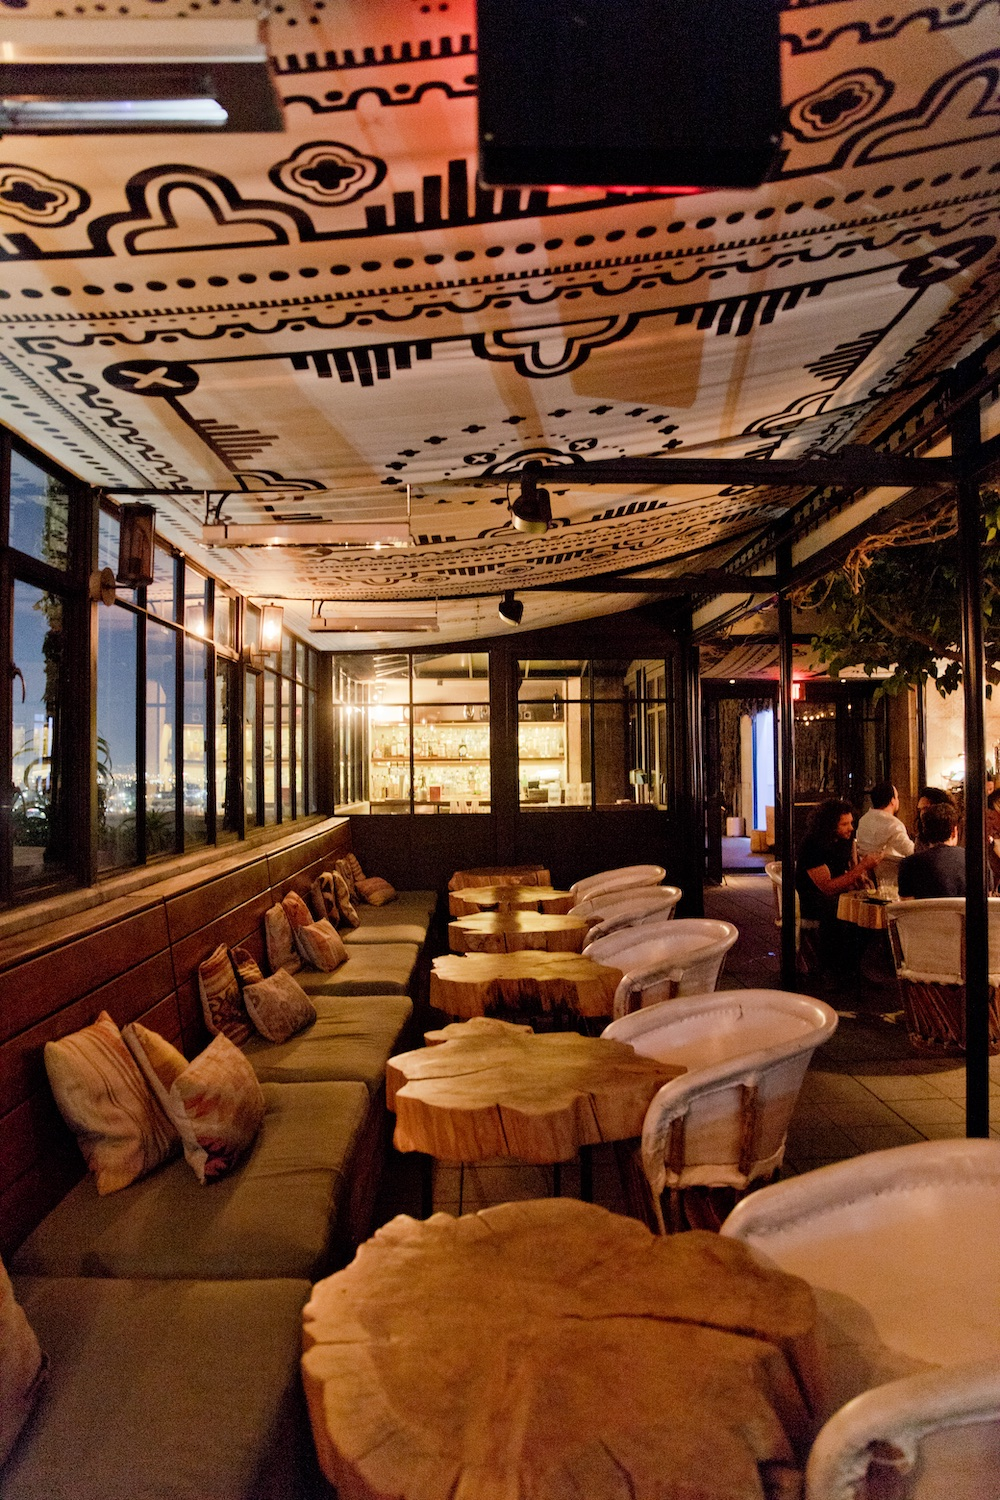 Ace Hotel Los Angeles Restaurant Bar Guide First Time | www.thegoldenbun.com